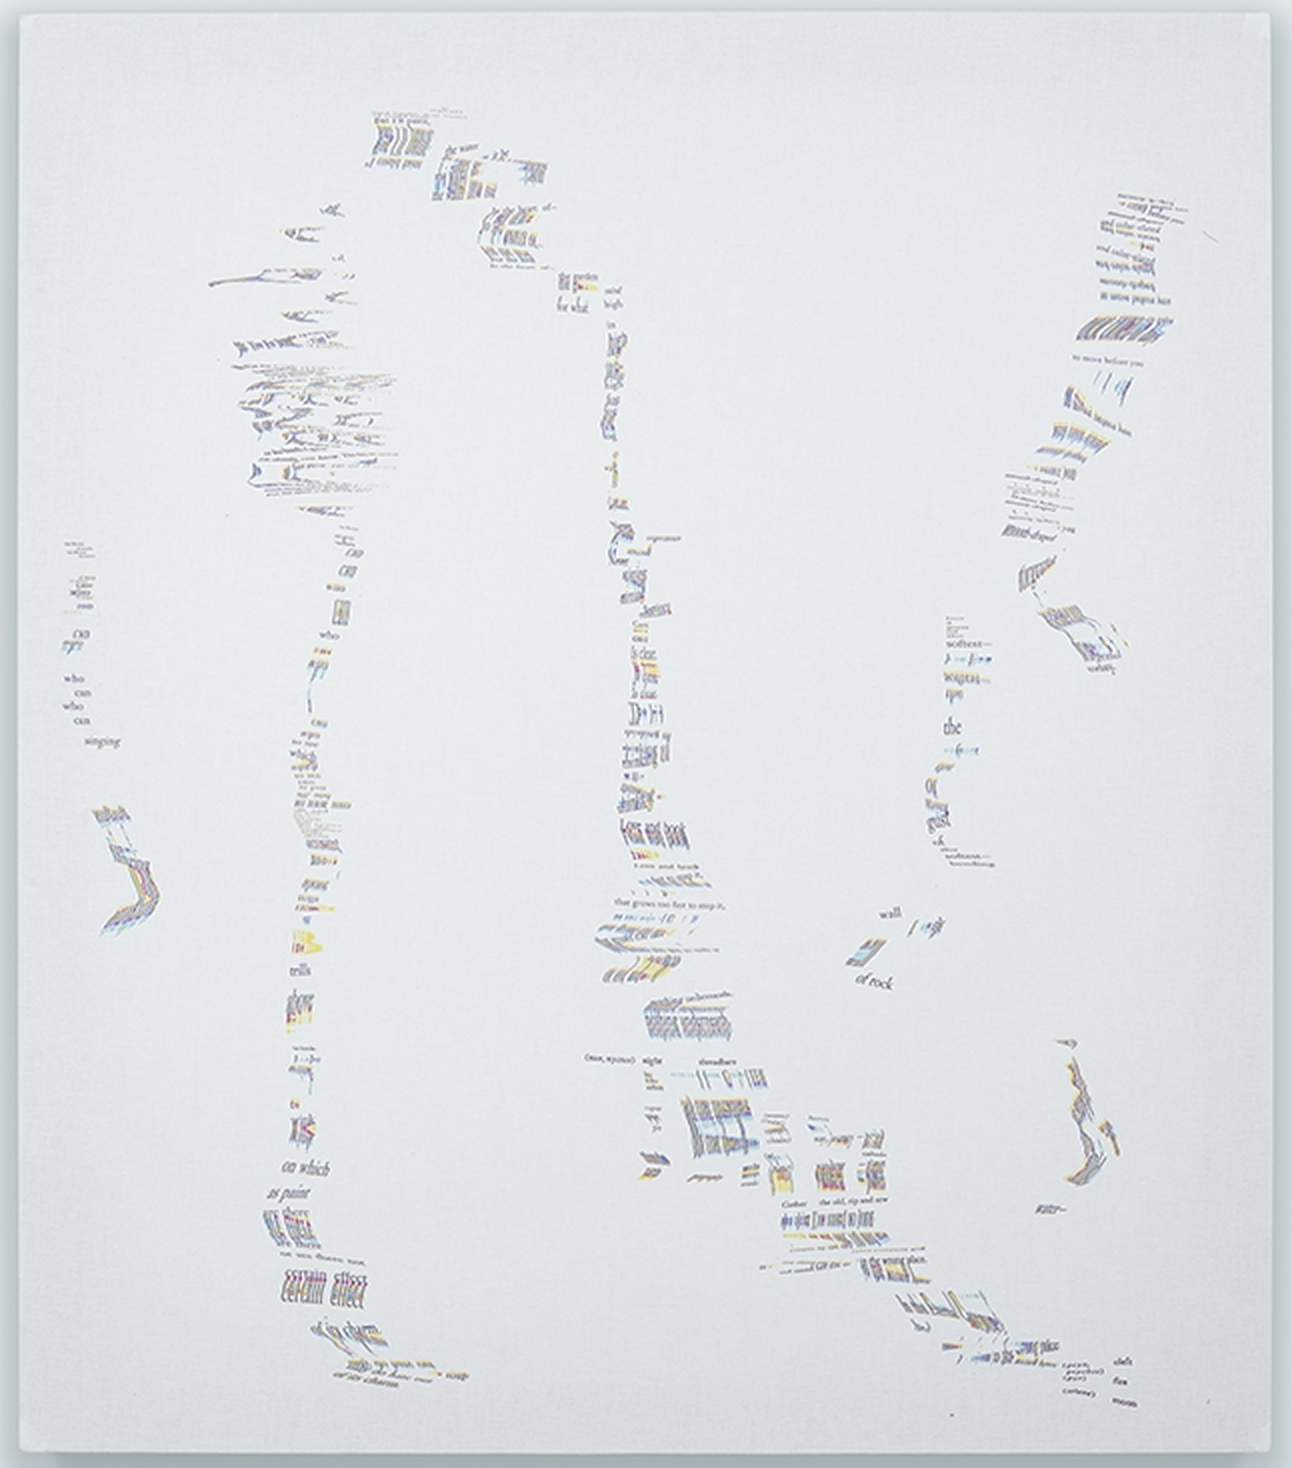 Oblique Archive III: Lorine Niedecker, The Loom of Language   2014   44 x 36 inches   Archival pigment print on canvas   FC004